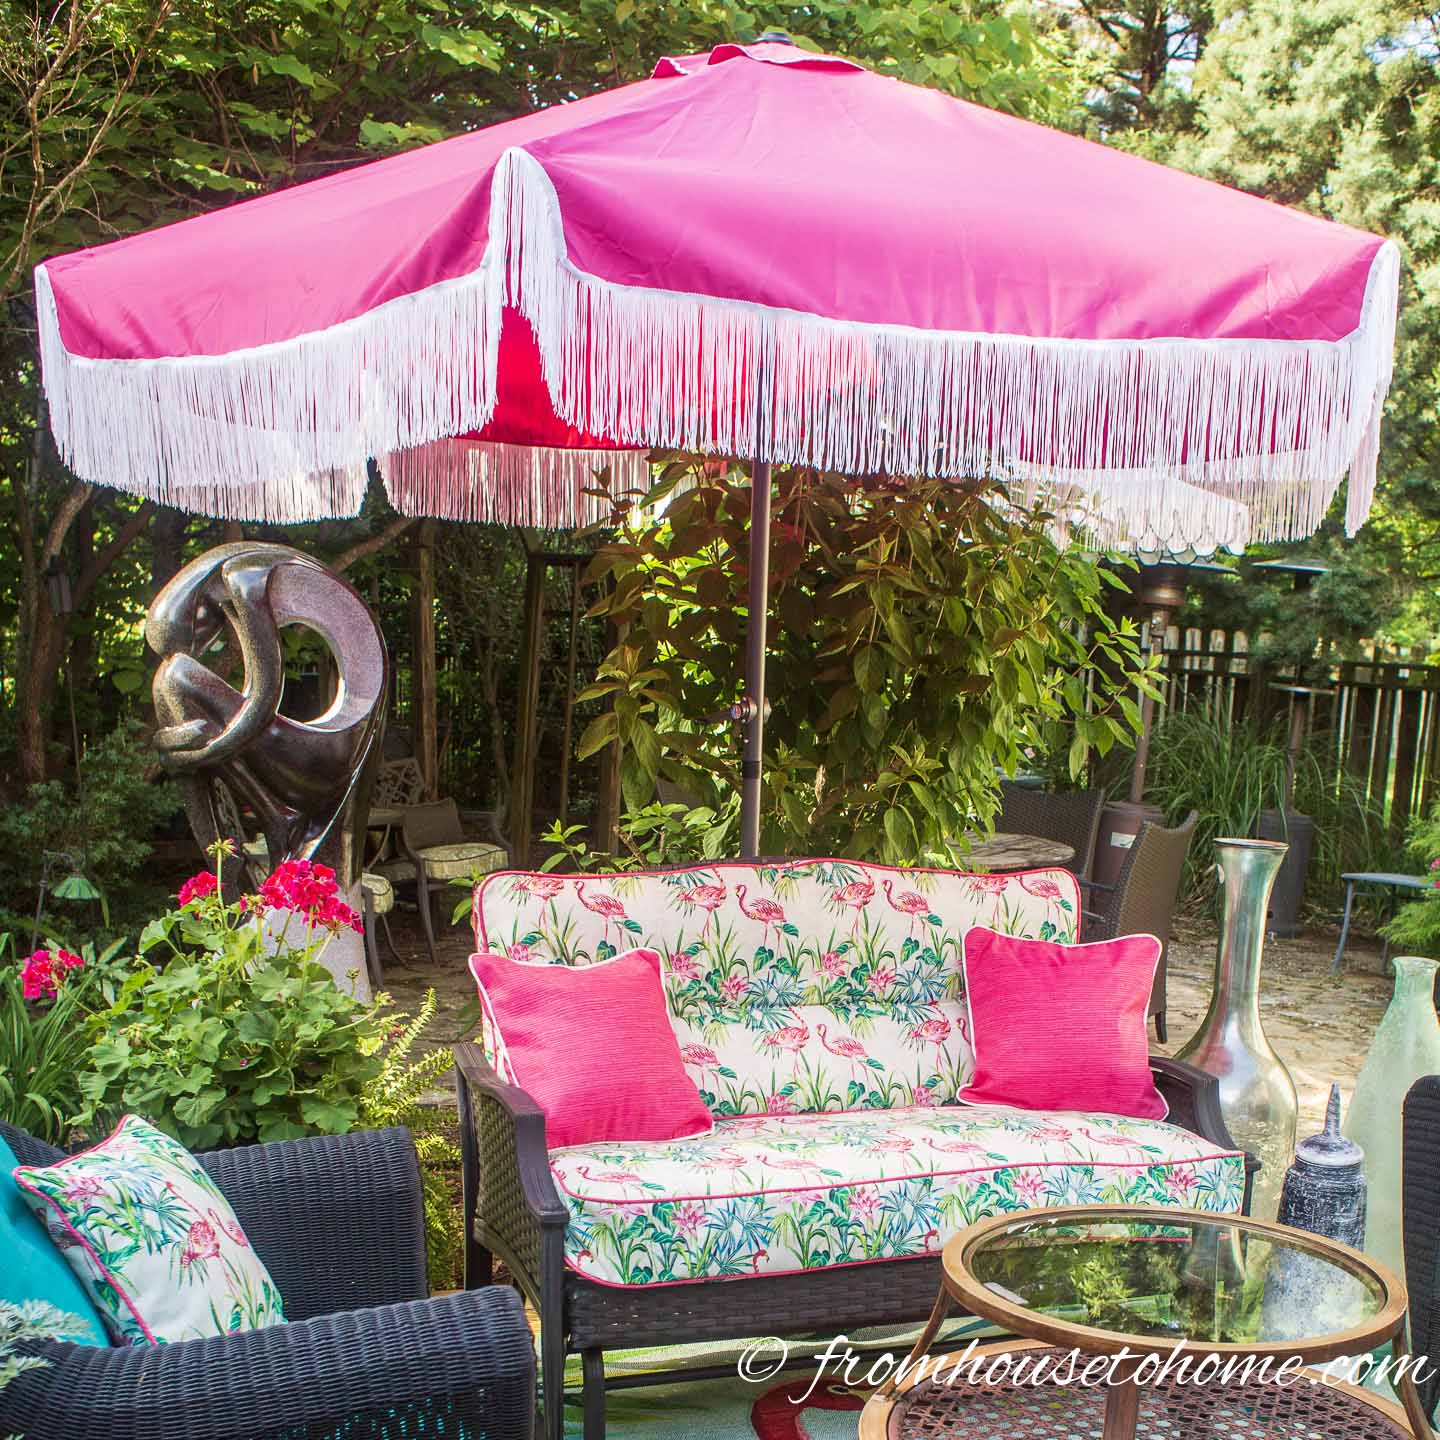 Glam Diy Fringe Patio Umbrella No Sewing Required